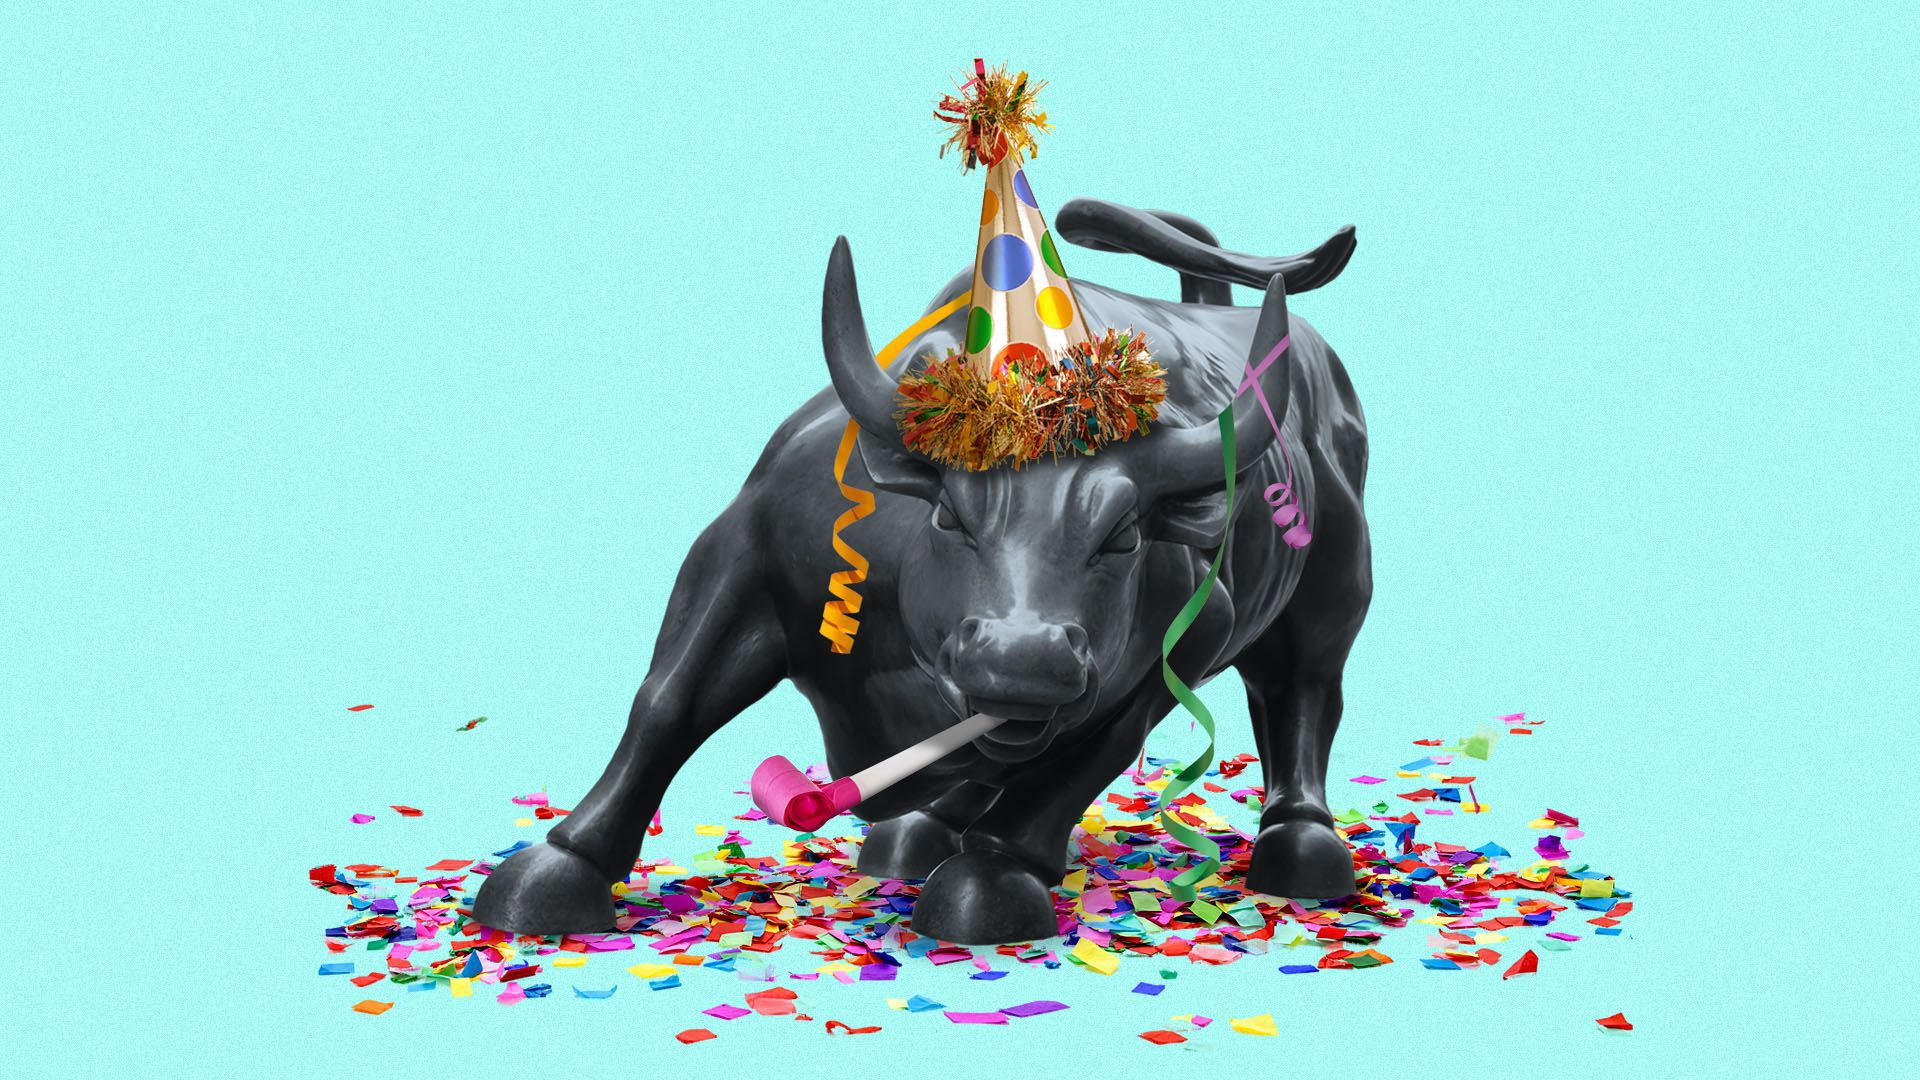 Charging Bull with a party hat and confetti.